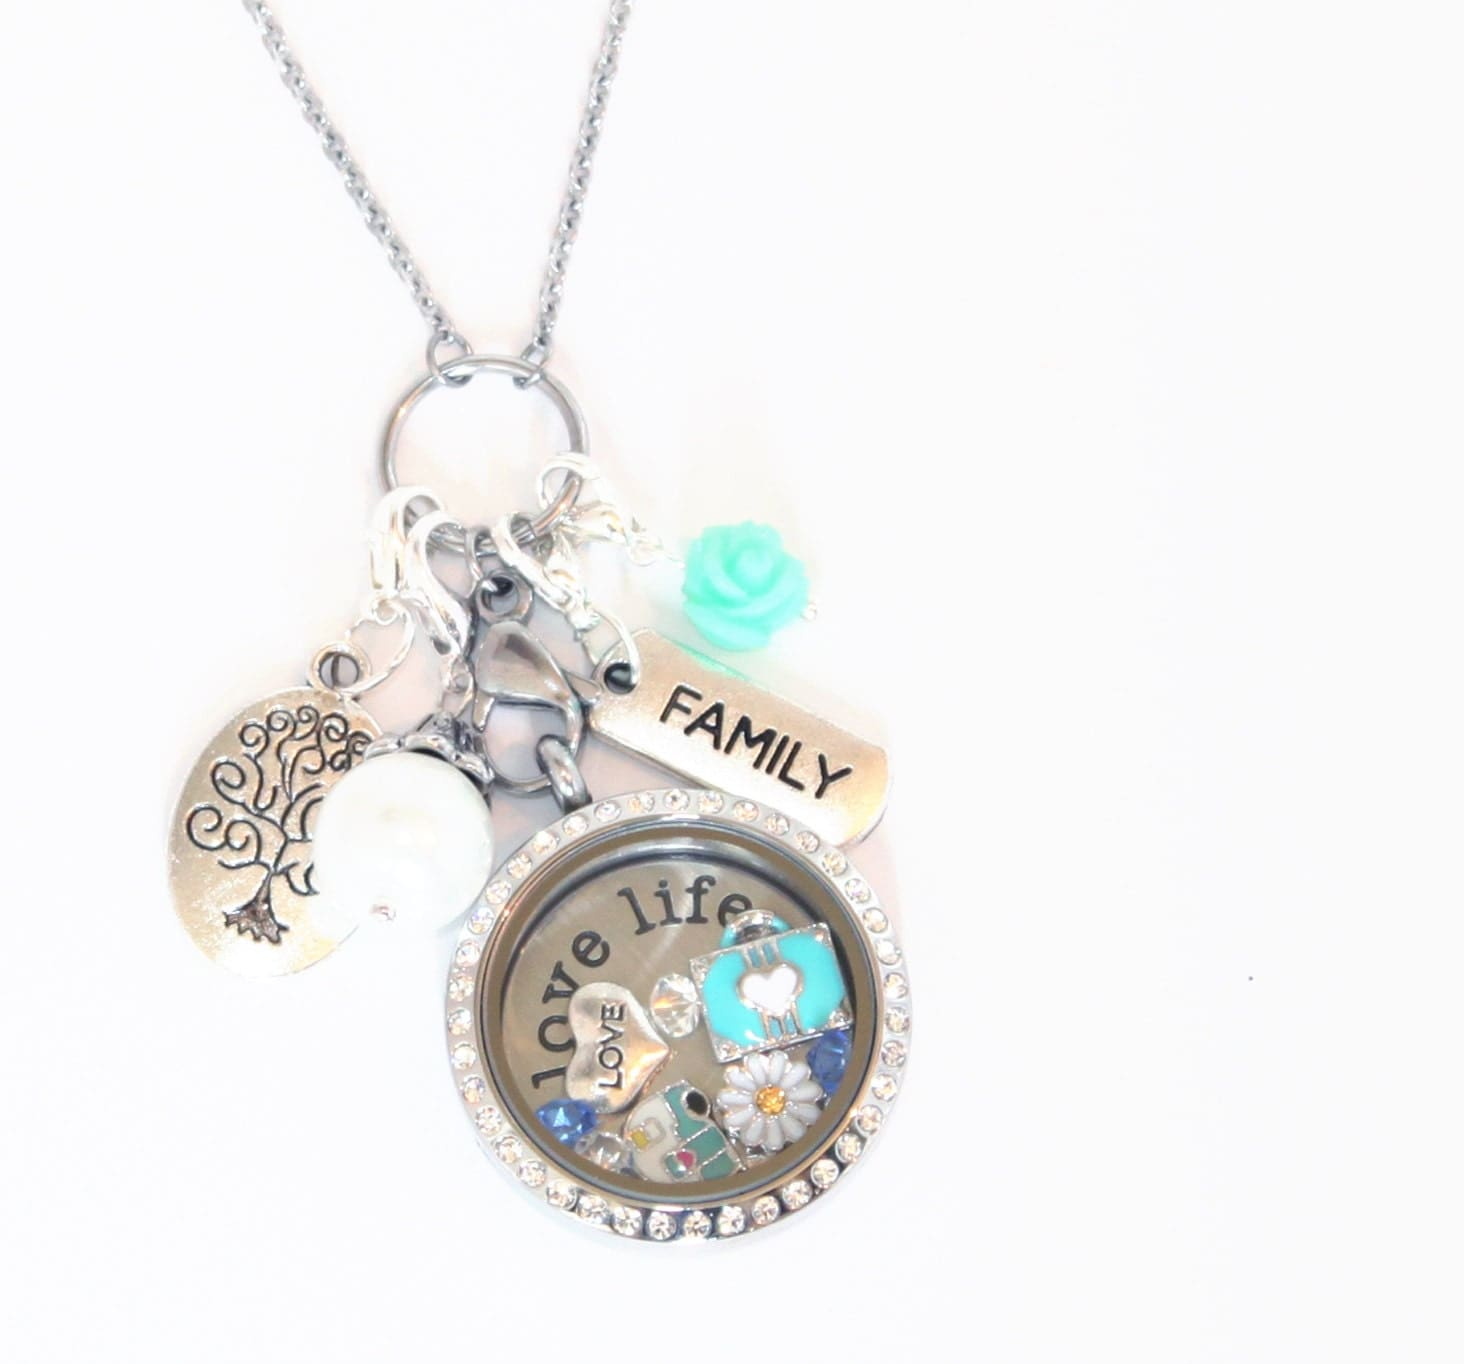 family travel floating locket and charm collection for